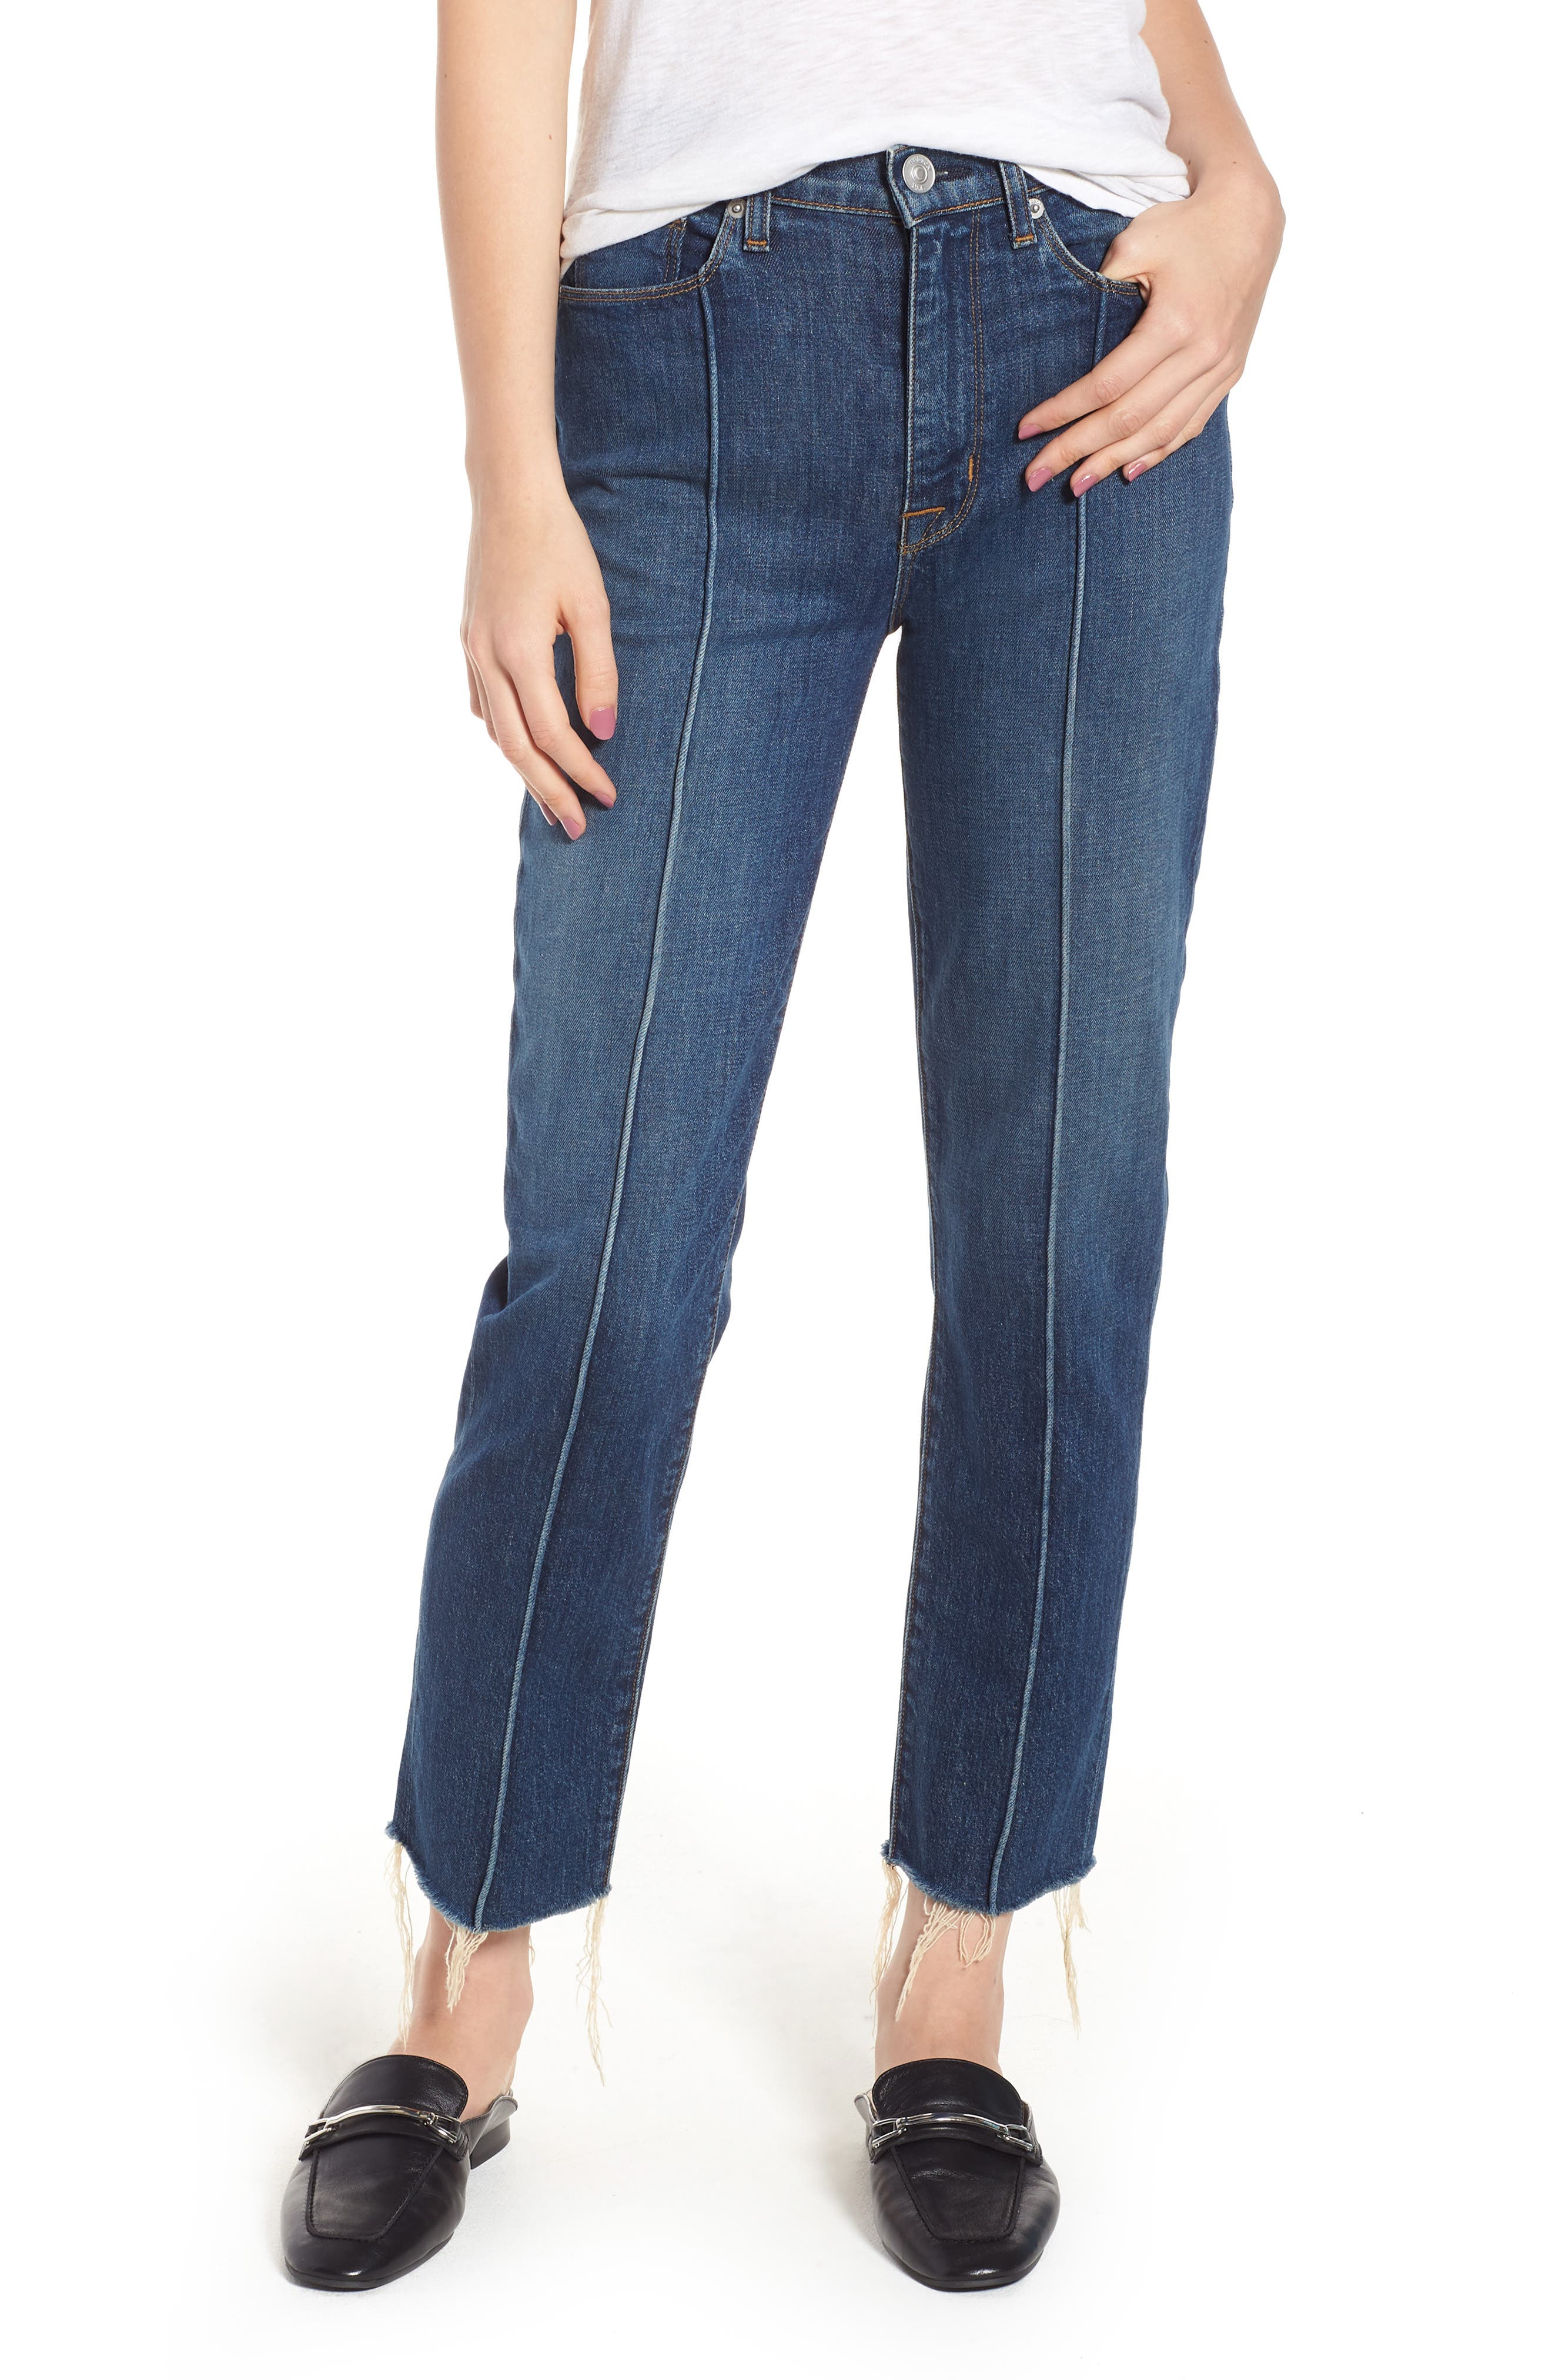 Zoeey High Waist Crop Straight Leg Jeans,                             Main thumbnail 1, color,                             Demeanor